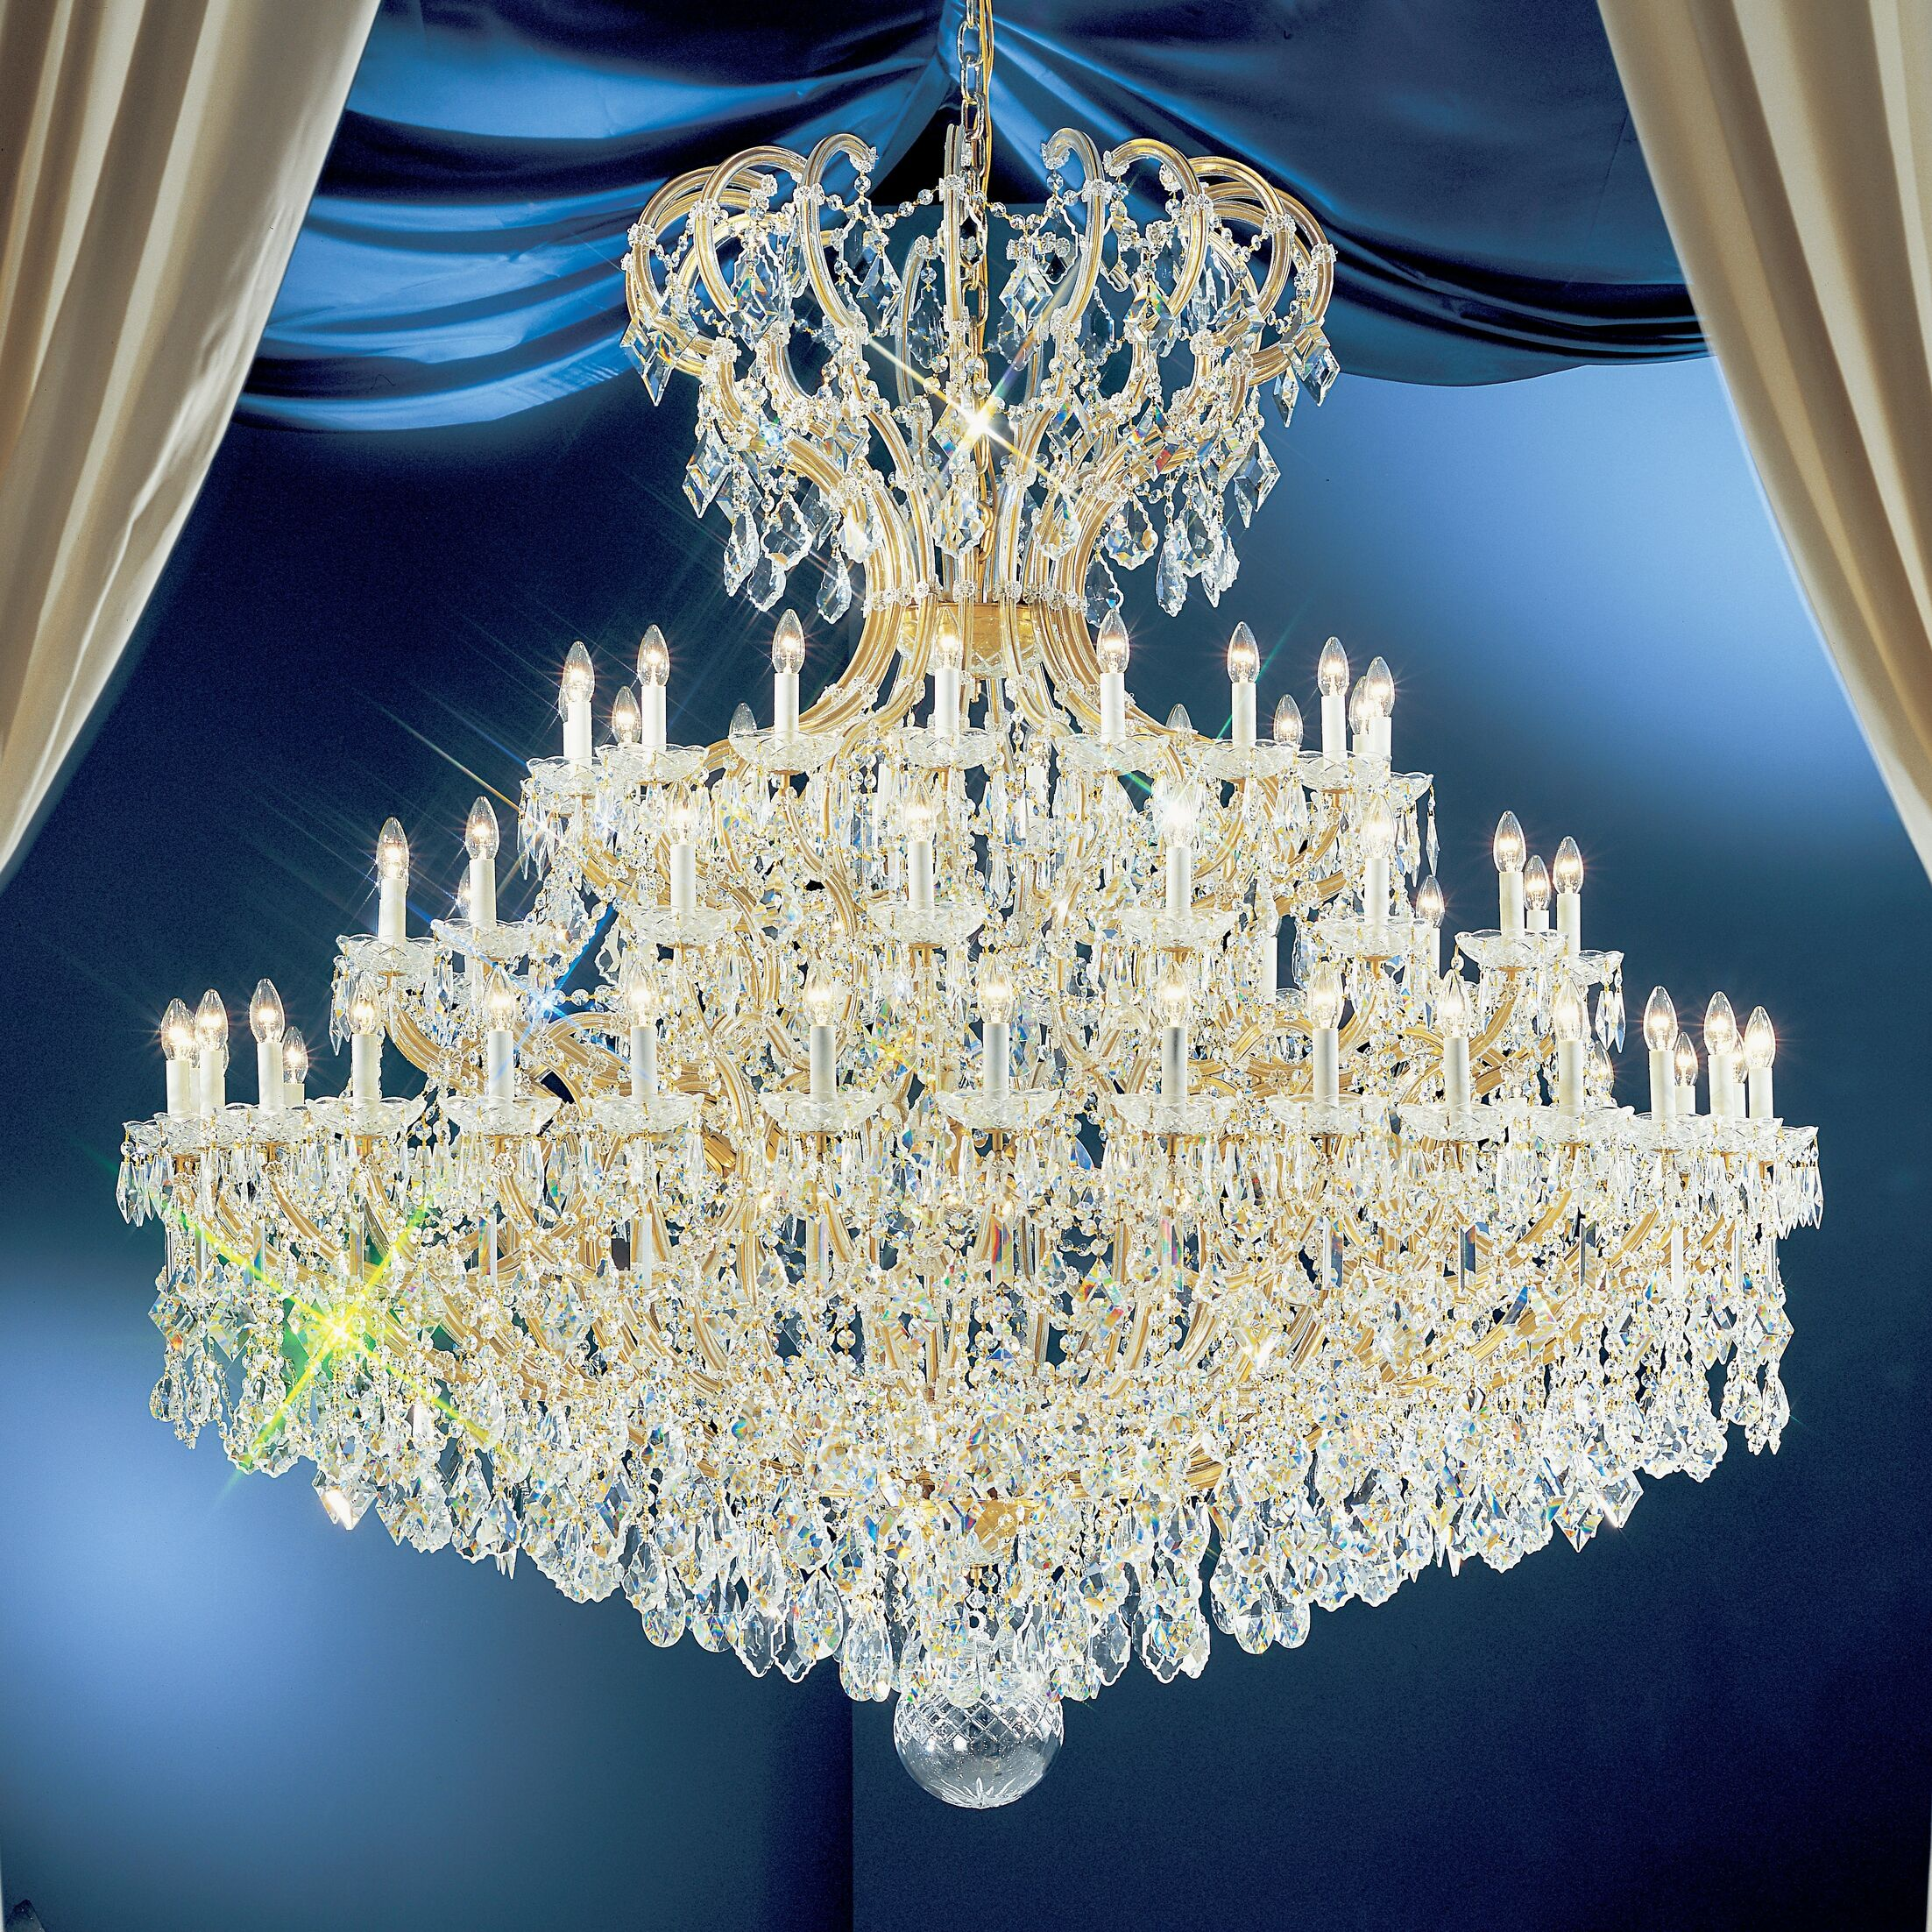 Maria Thersea 72-Light Empire Chandelier Finish: Olde World Gold, Crystal Type: Crystalique